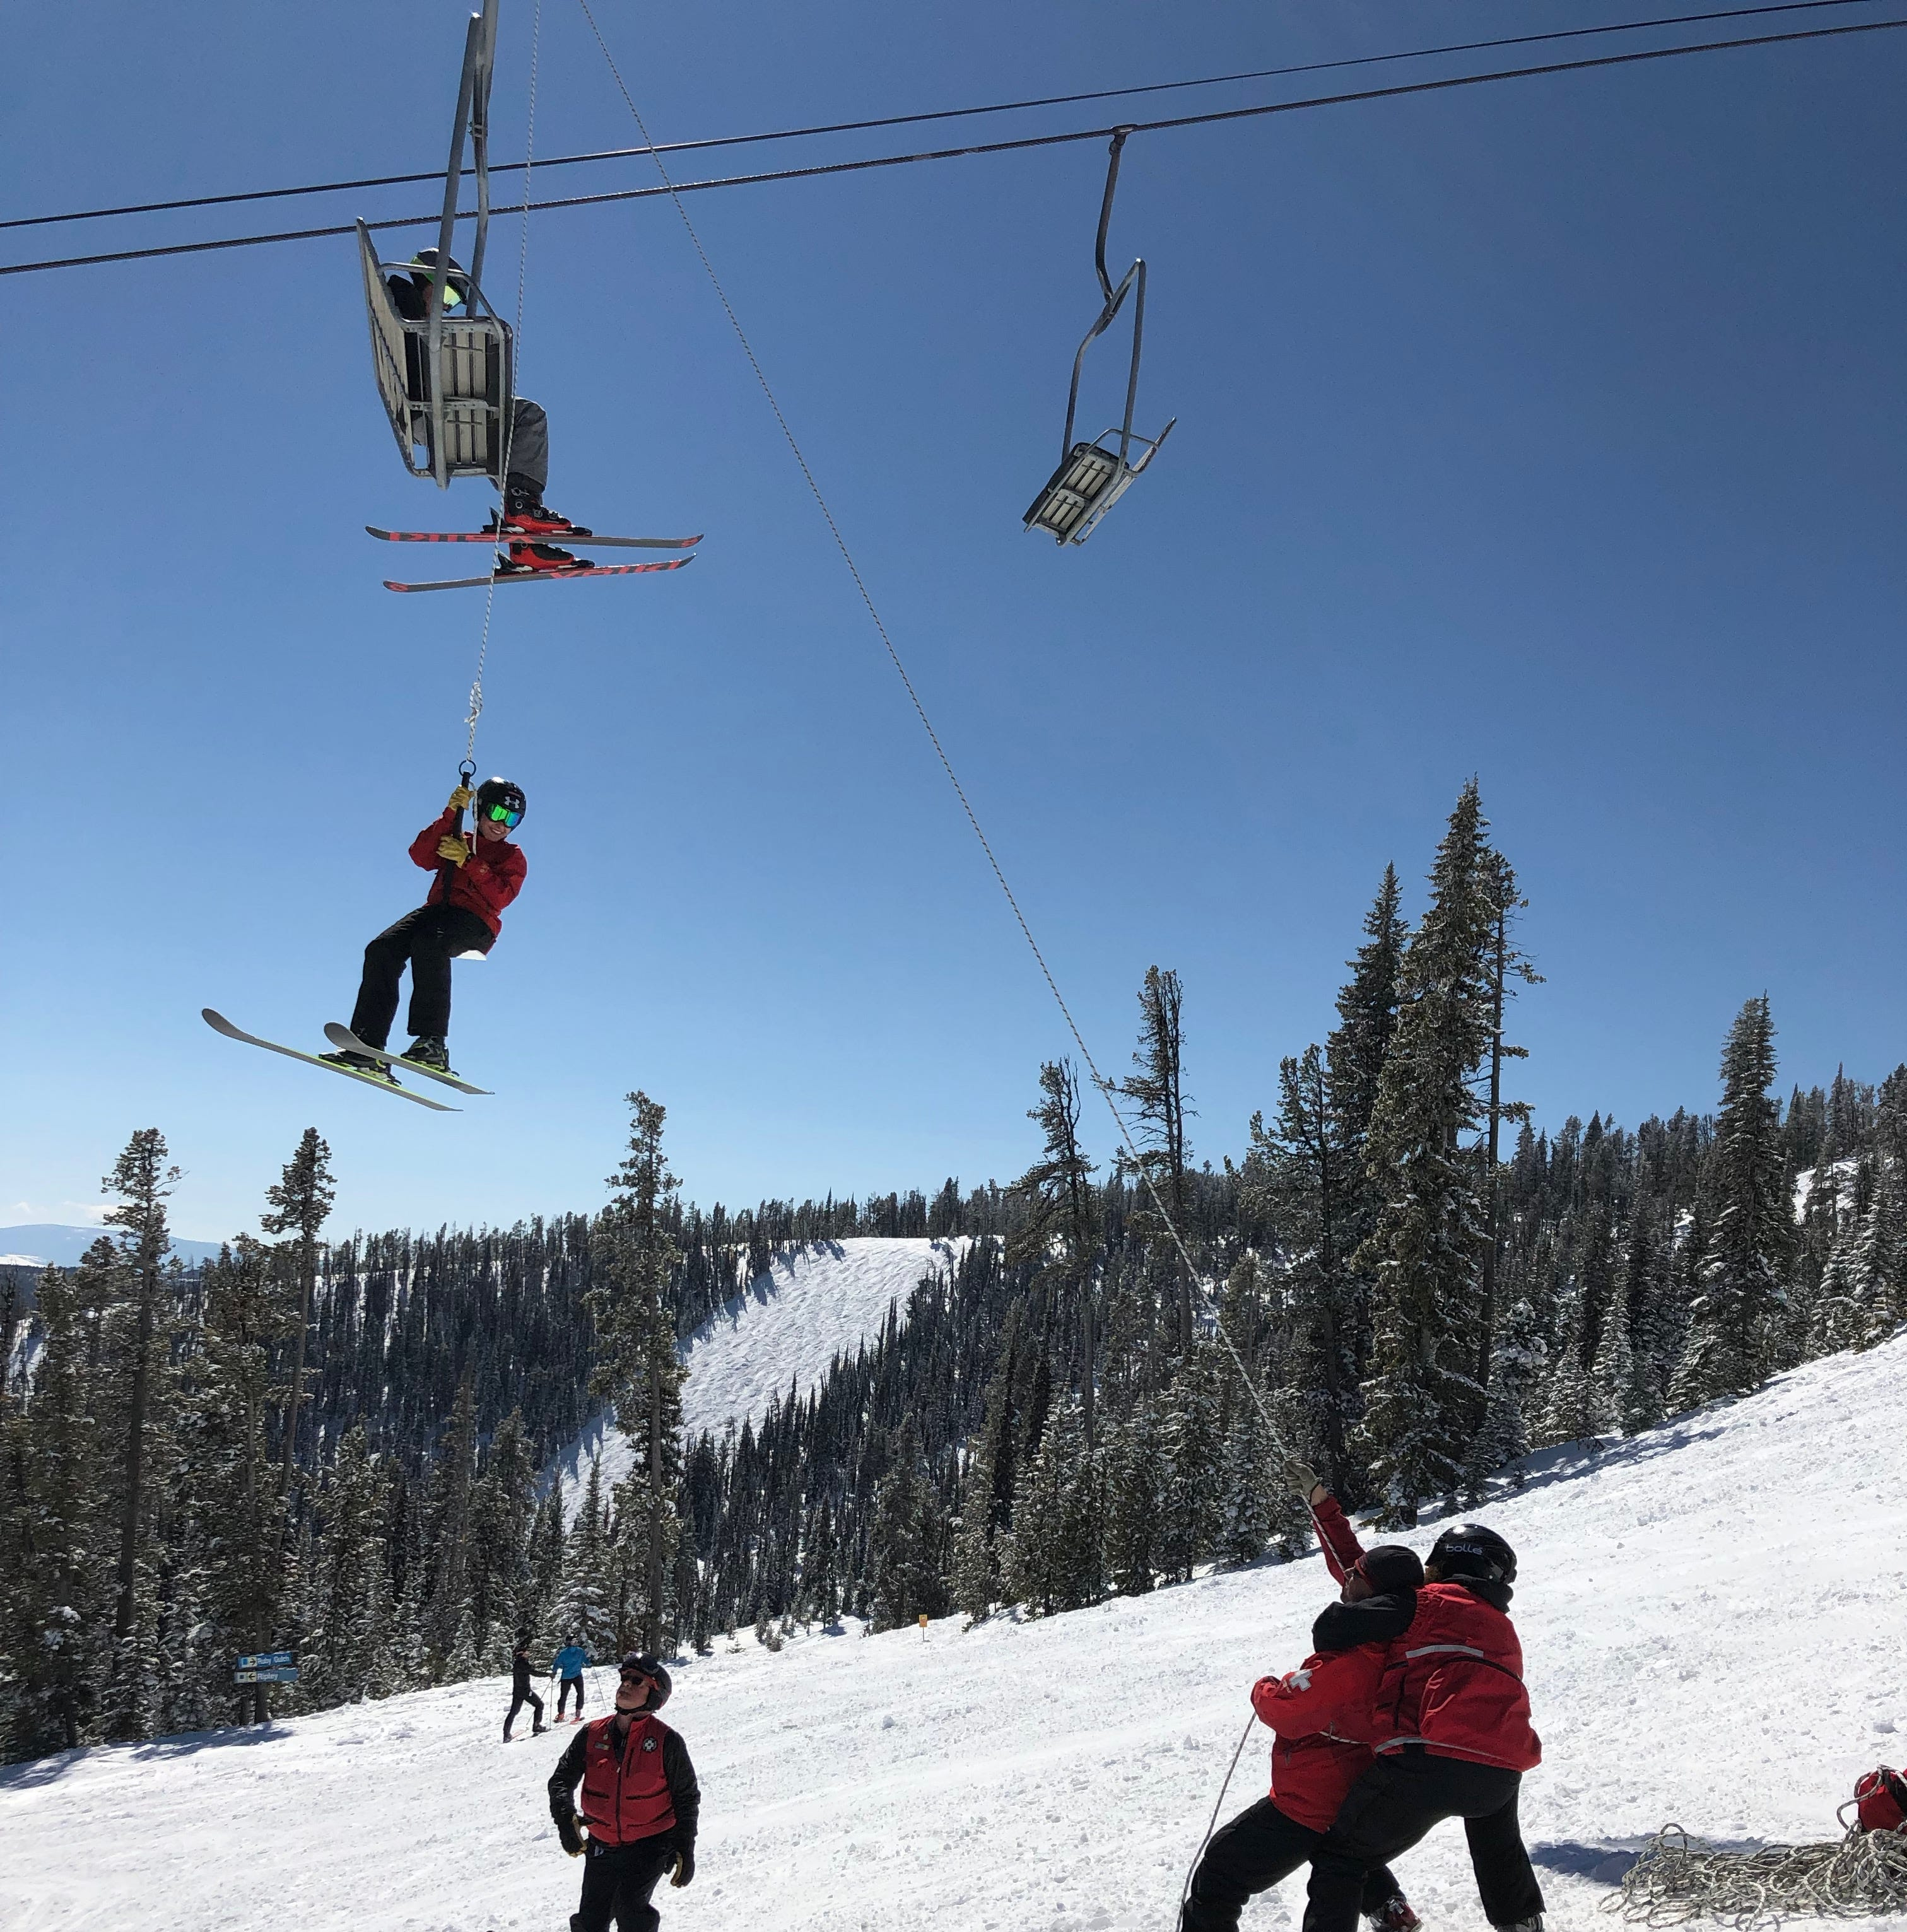 85 skiers lowered from lift on ropes after malfunction at Showdown